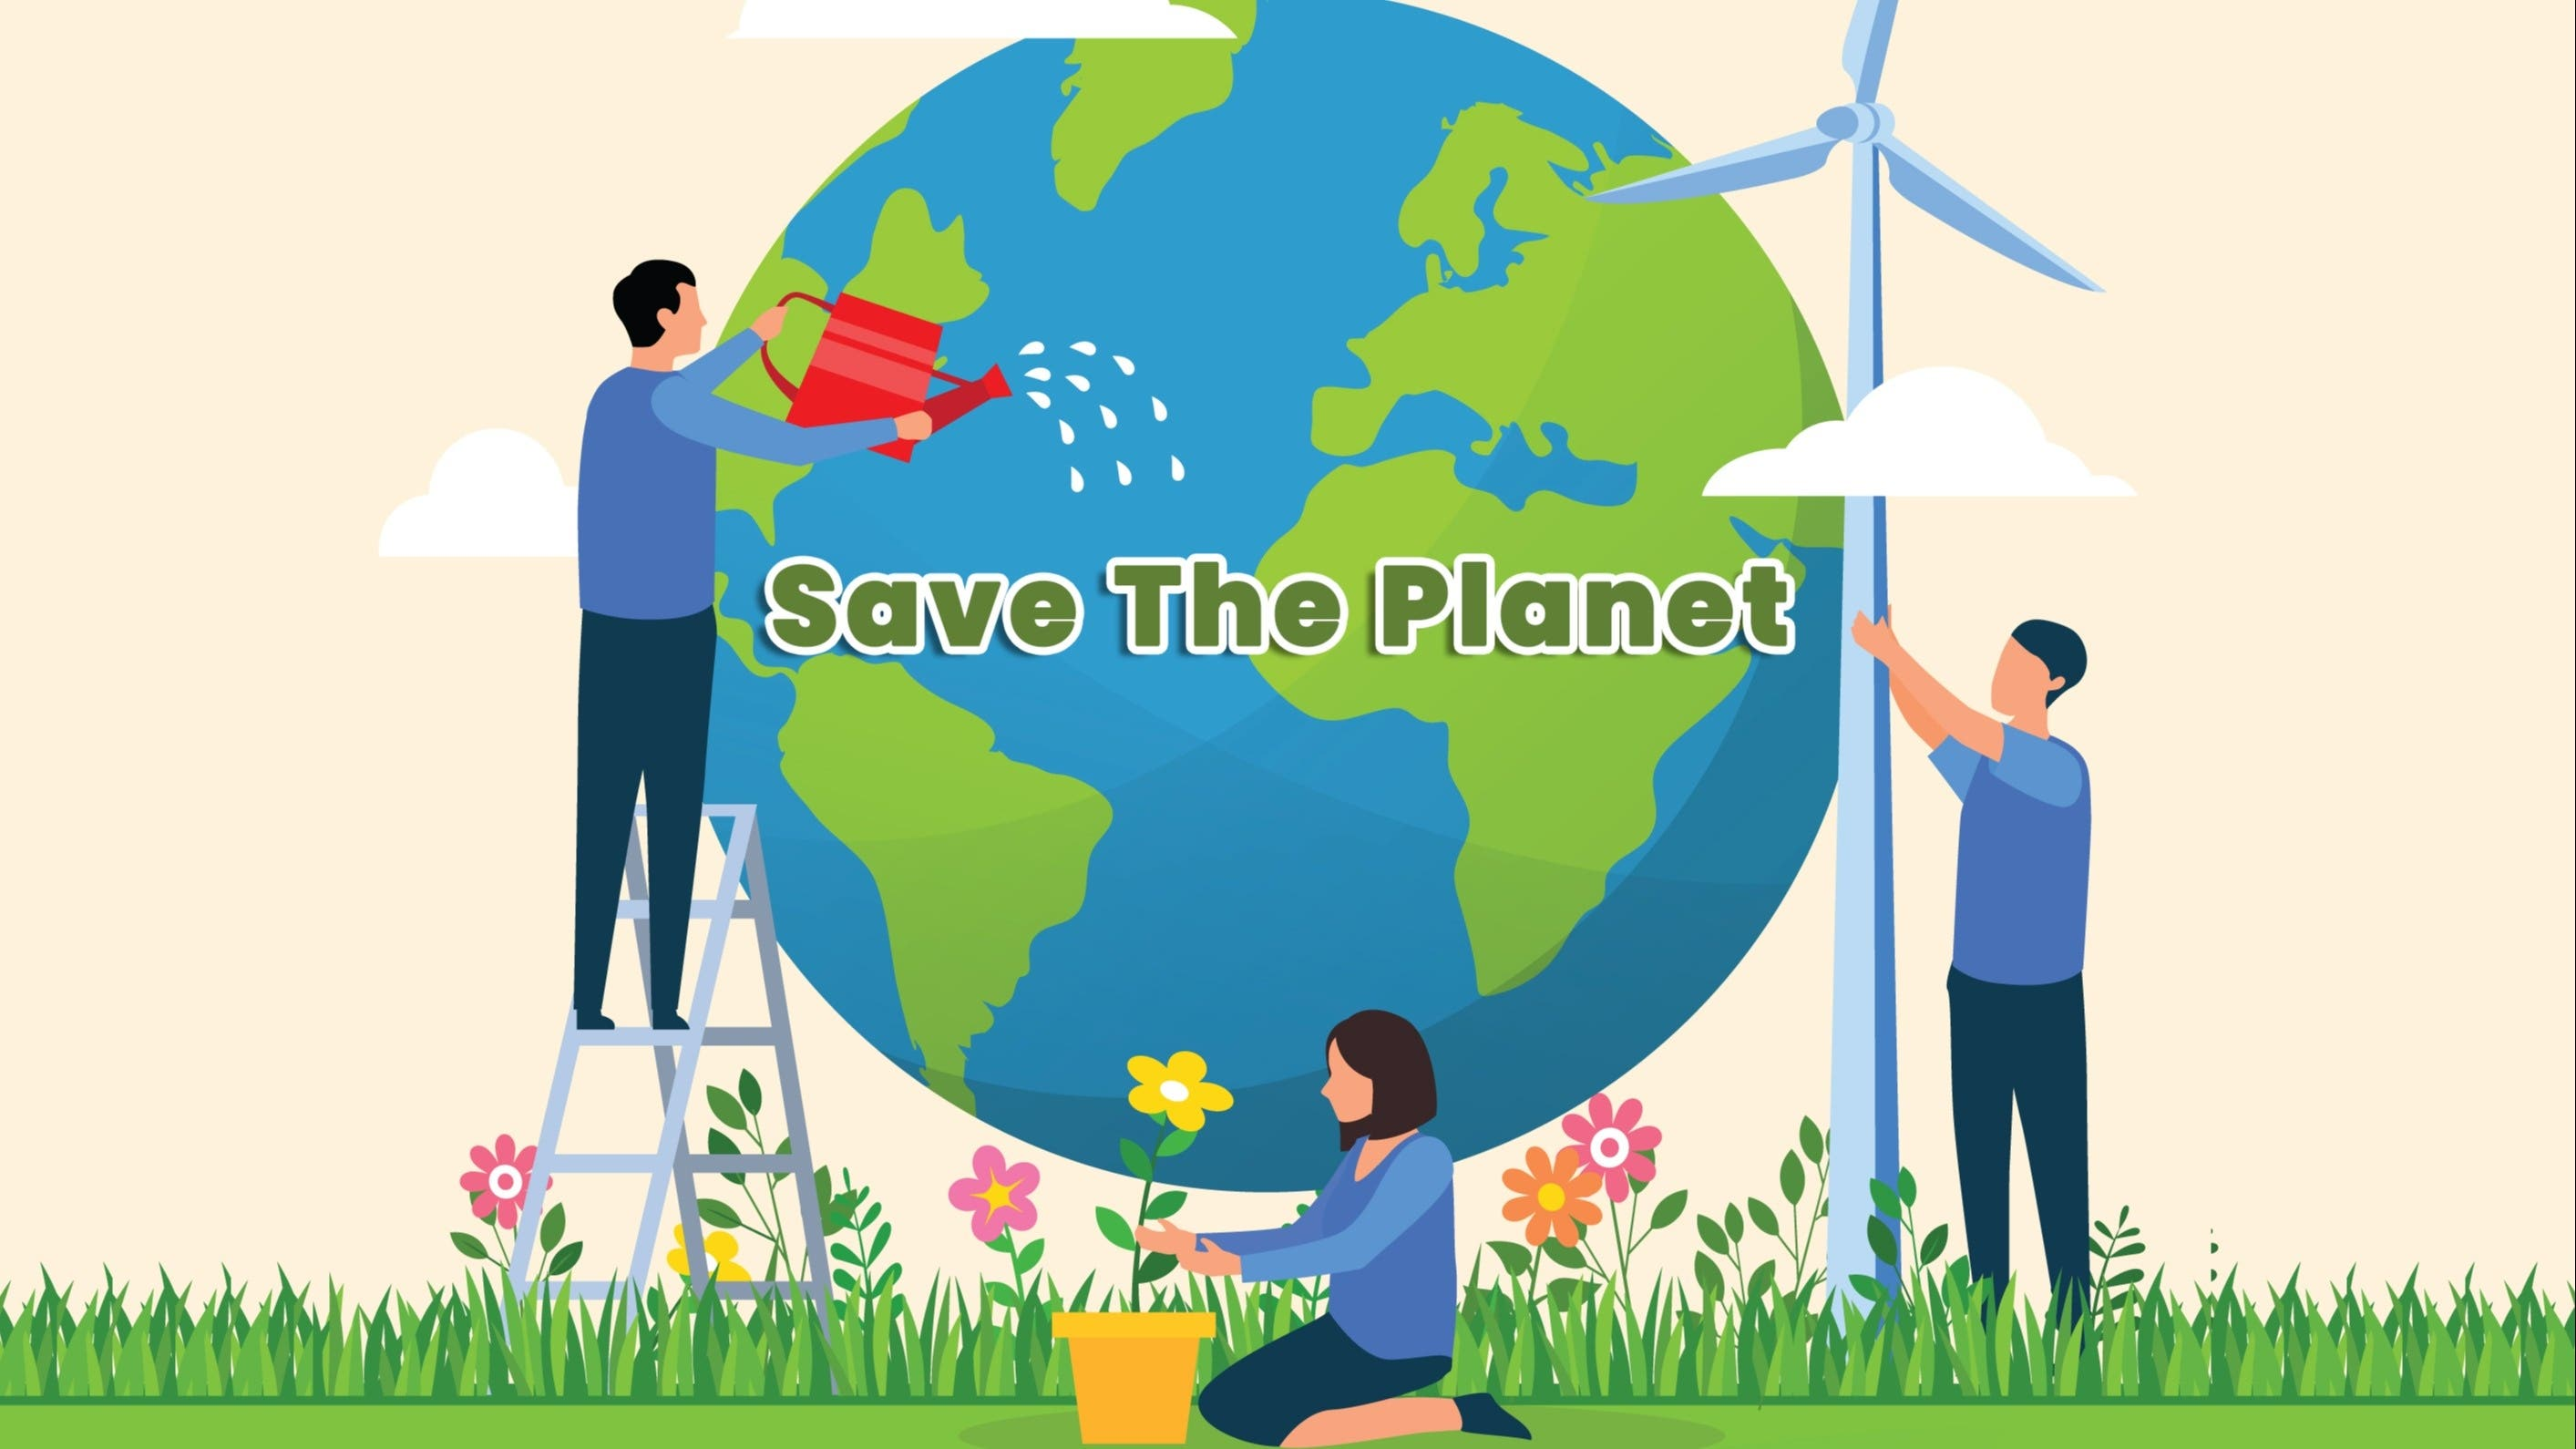 Save The Planet - Learning For Life